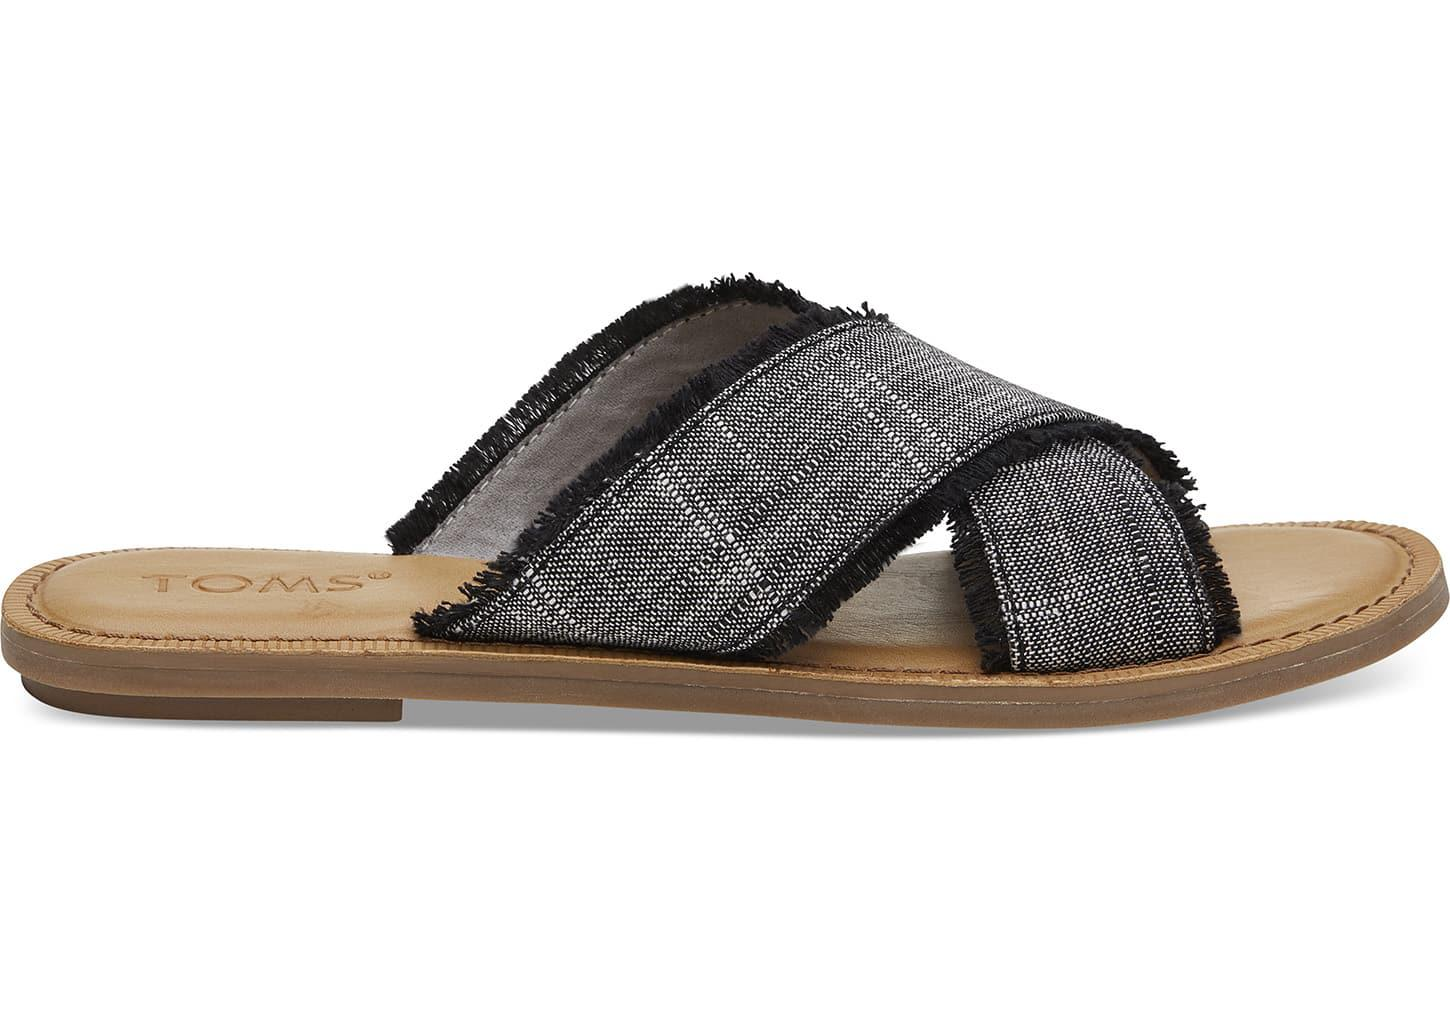 d1e59efe2495f0 Lyst - Toms Black Textured Chambray Women s Viv Sandals in Black